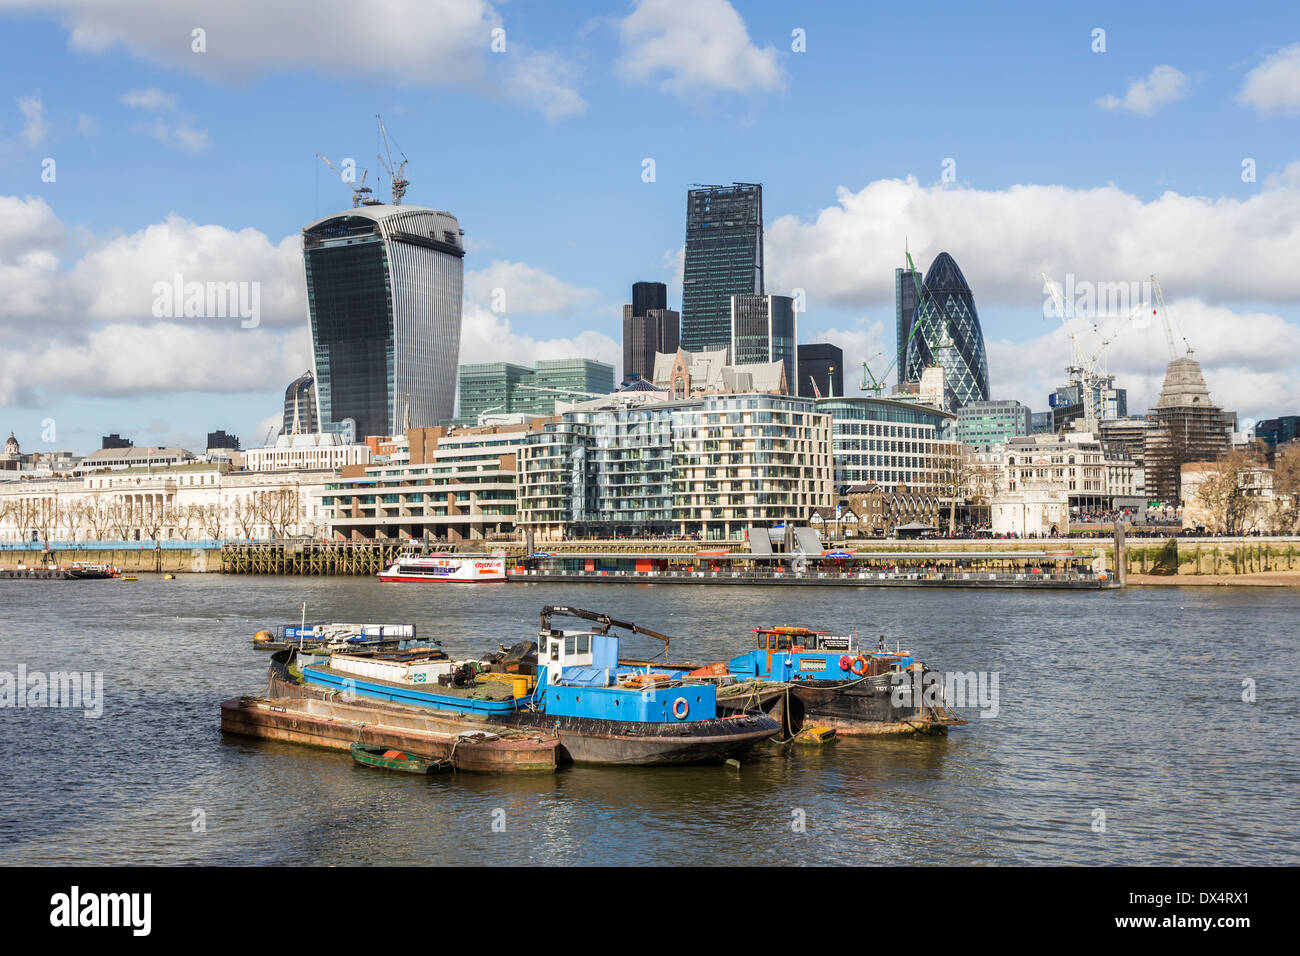 View from South Bank River Thames showing the construction of The Walkie-Talkie and the Cheesegrater - Stock Image